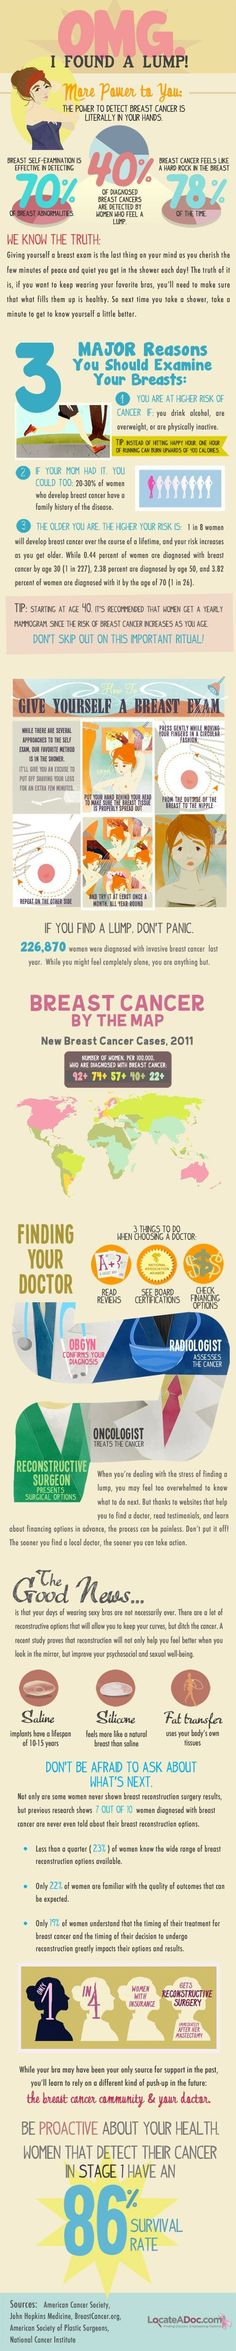 Breast Cancer Facts – The Good News & Bad #breastcancerawareness #breastcancerinfographic